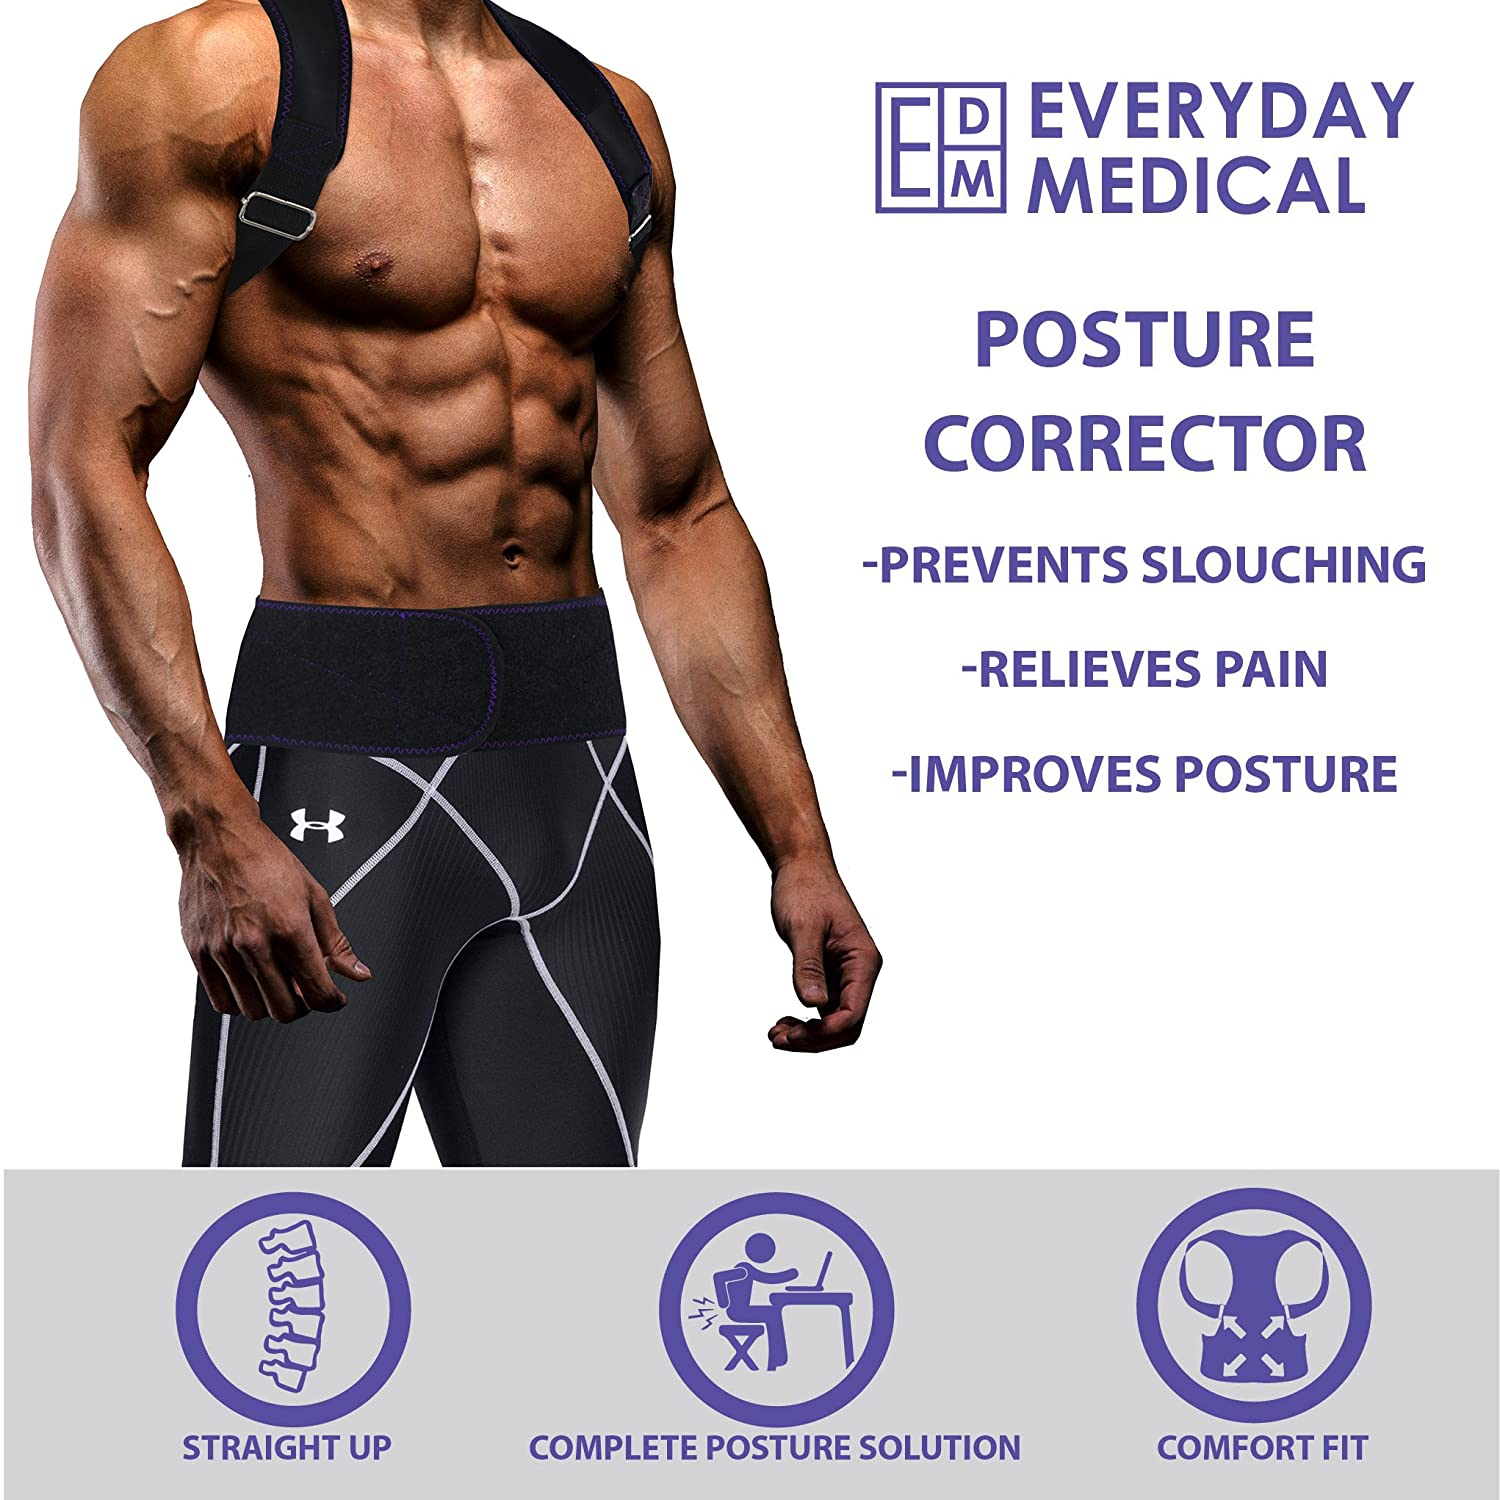 Amazon.com: Everyday Medical Posture Corrector Brace for Men and Women l Best Fitting Orthopedic Back Brace l 2-in-1 Lumbar Support | Tested on Over 35K ...